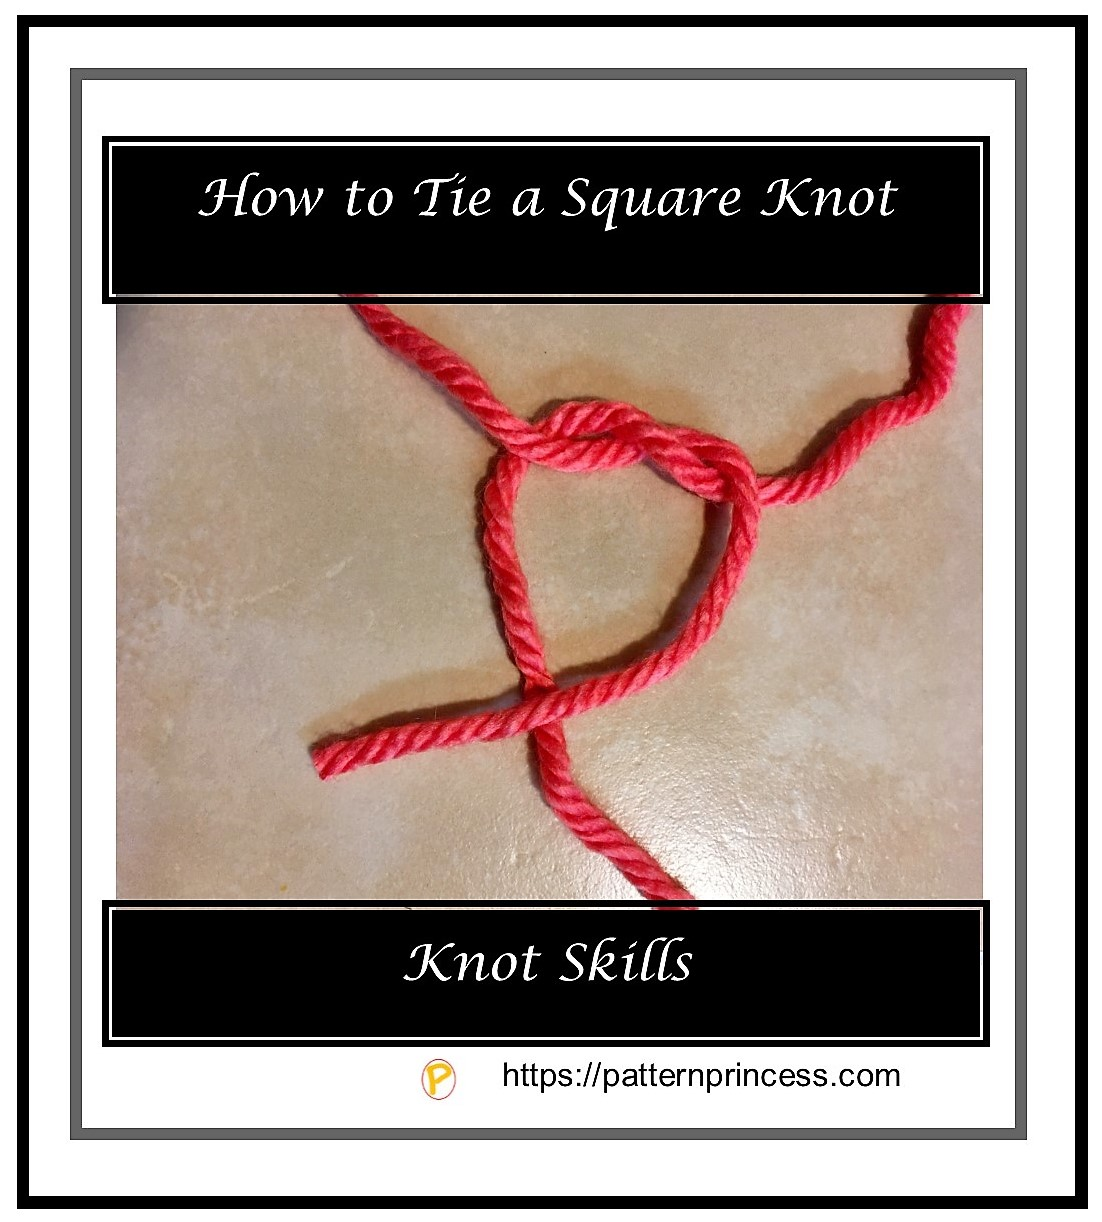 How to Tie a Square Knot 1